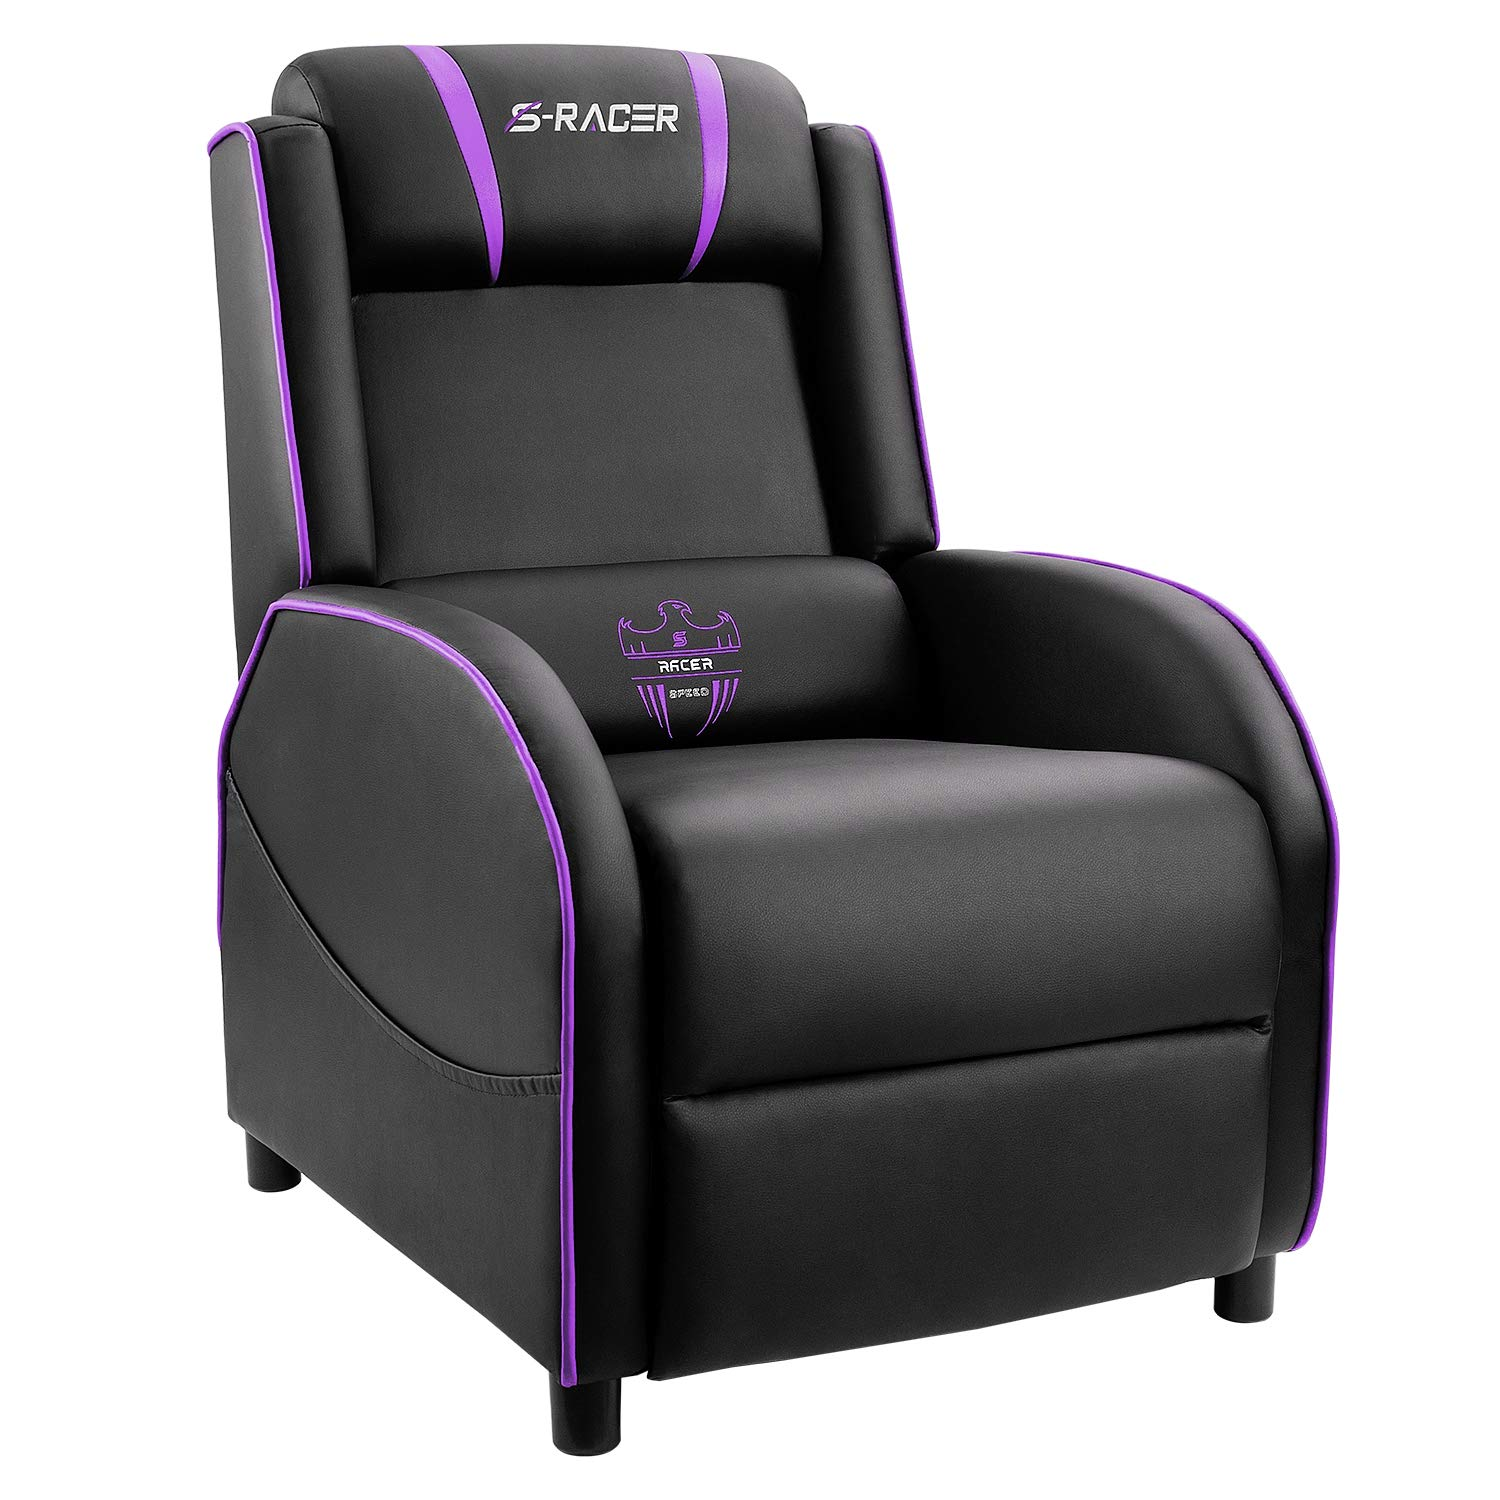 Strange Homall Gaming Recliner Chair Single Living Room Sofa Recliner Pu Leather Recliner Seat Home Theater Seating Purple Theyellowbook Wood Chair Design Ideas Theyellowbookinfo